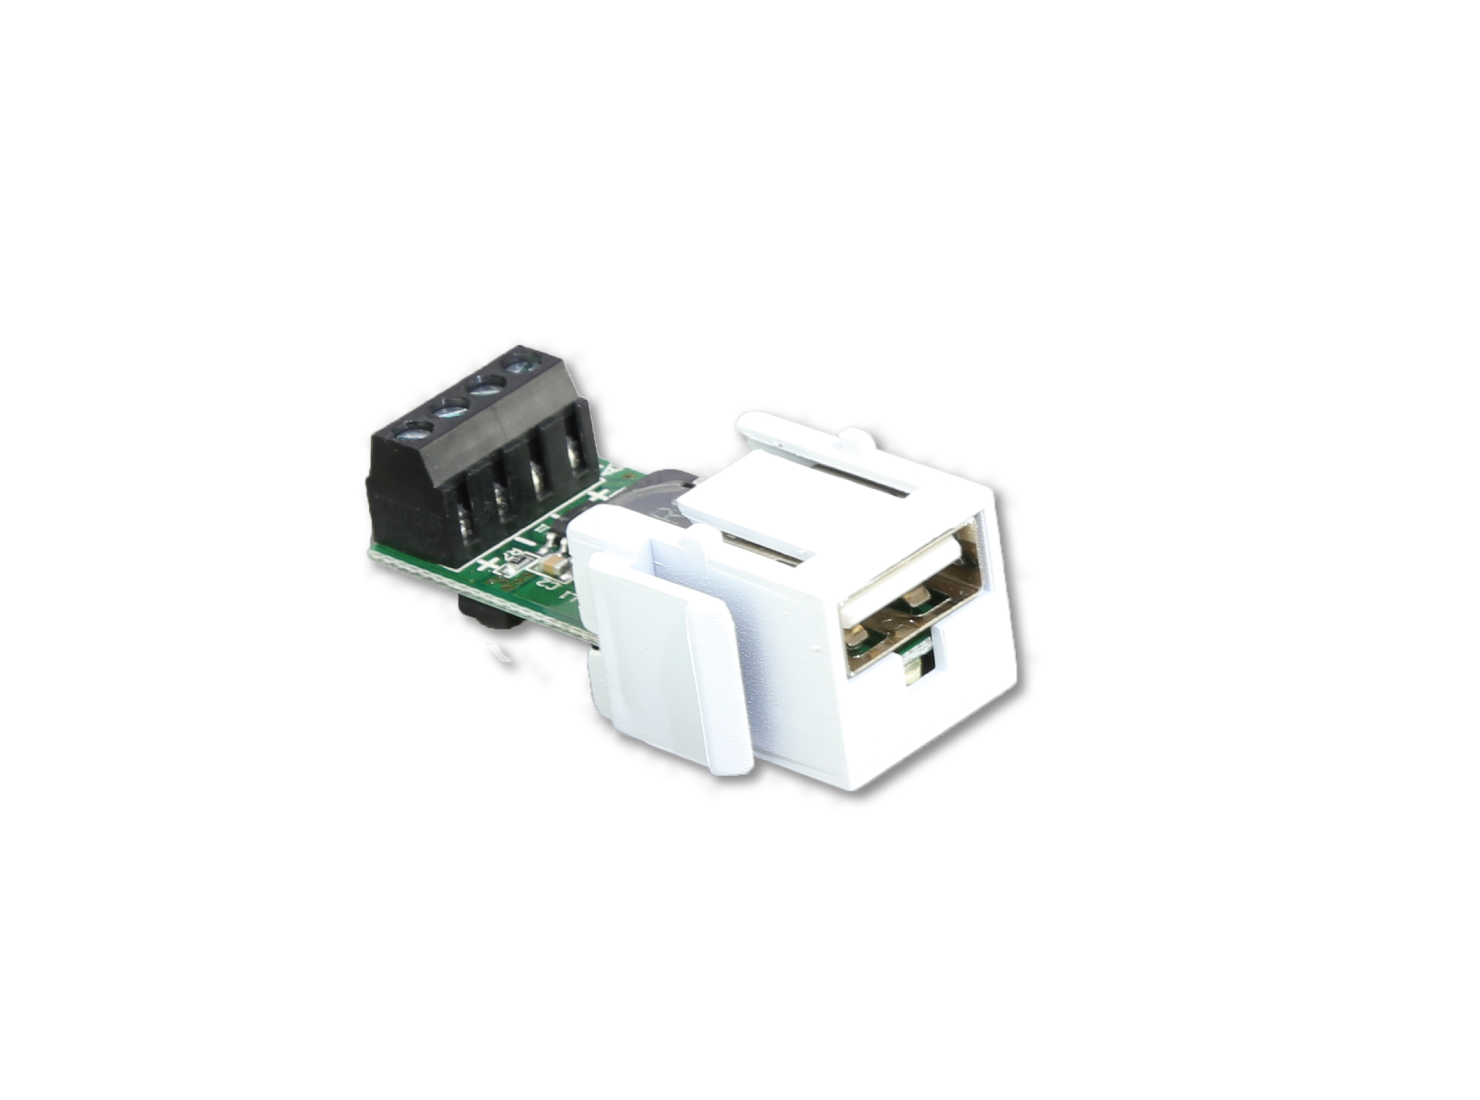 2.8 AMPs USB Keystone Charger